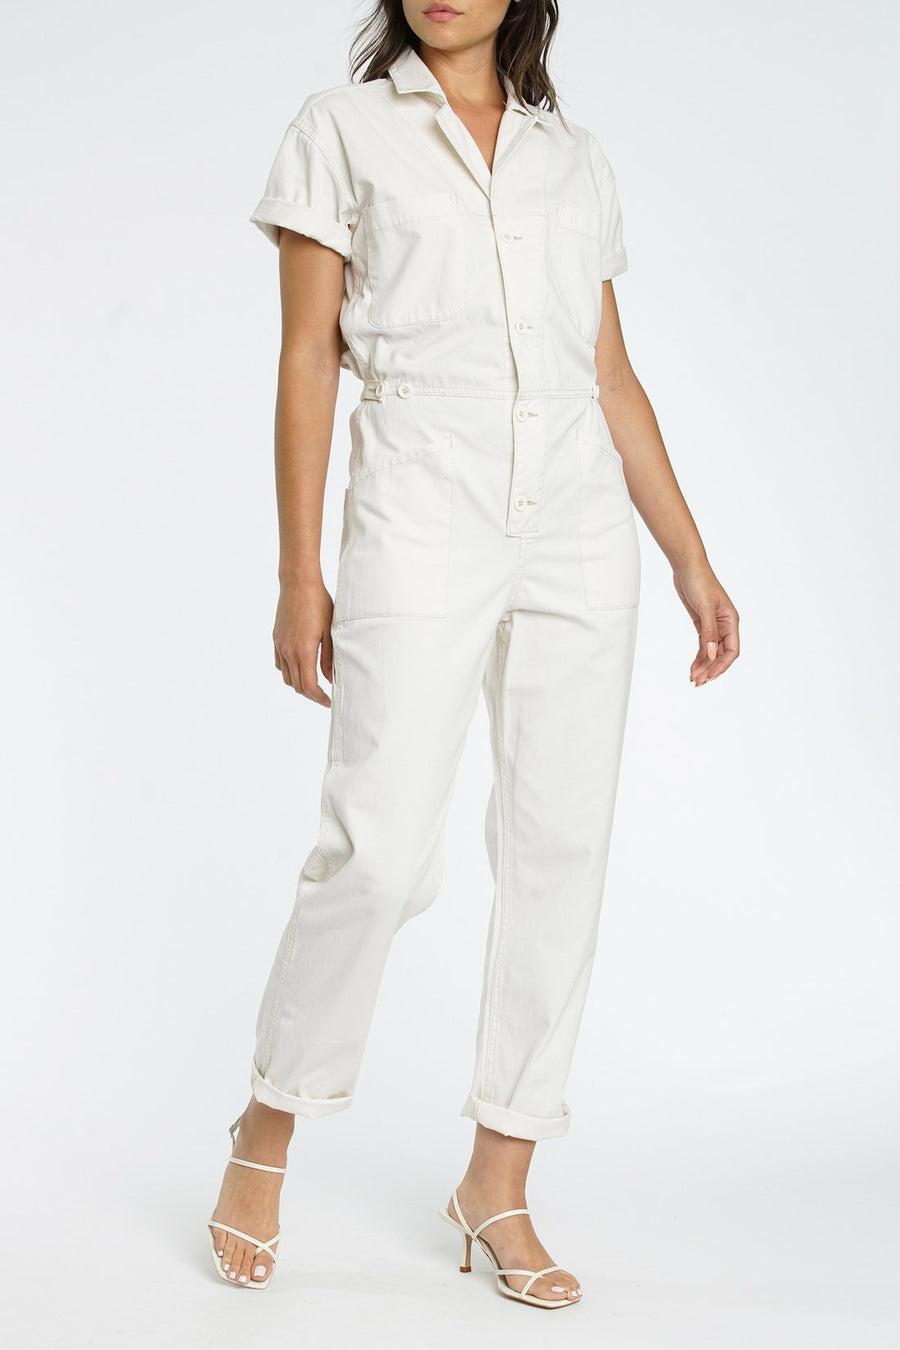 Pistola Grover Jumpsuit in Antique White